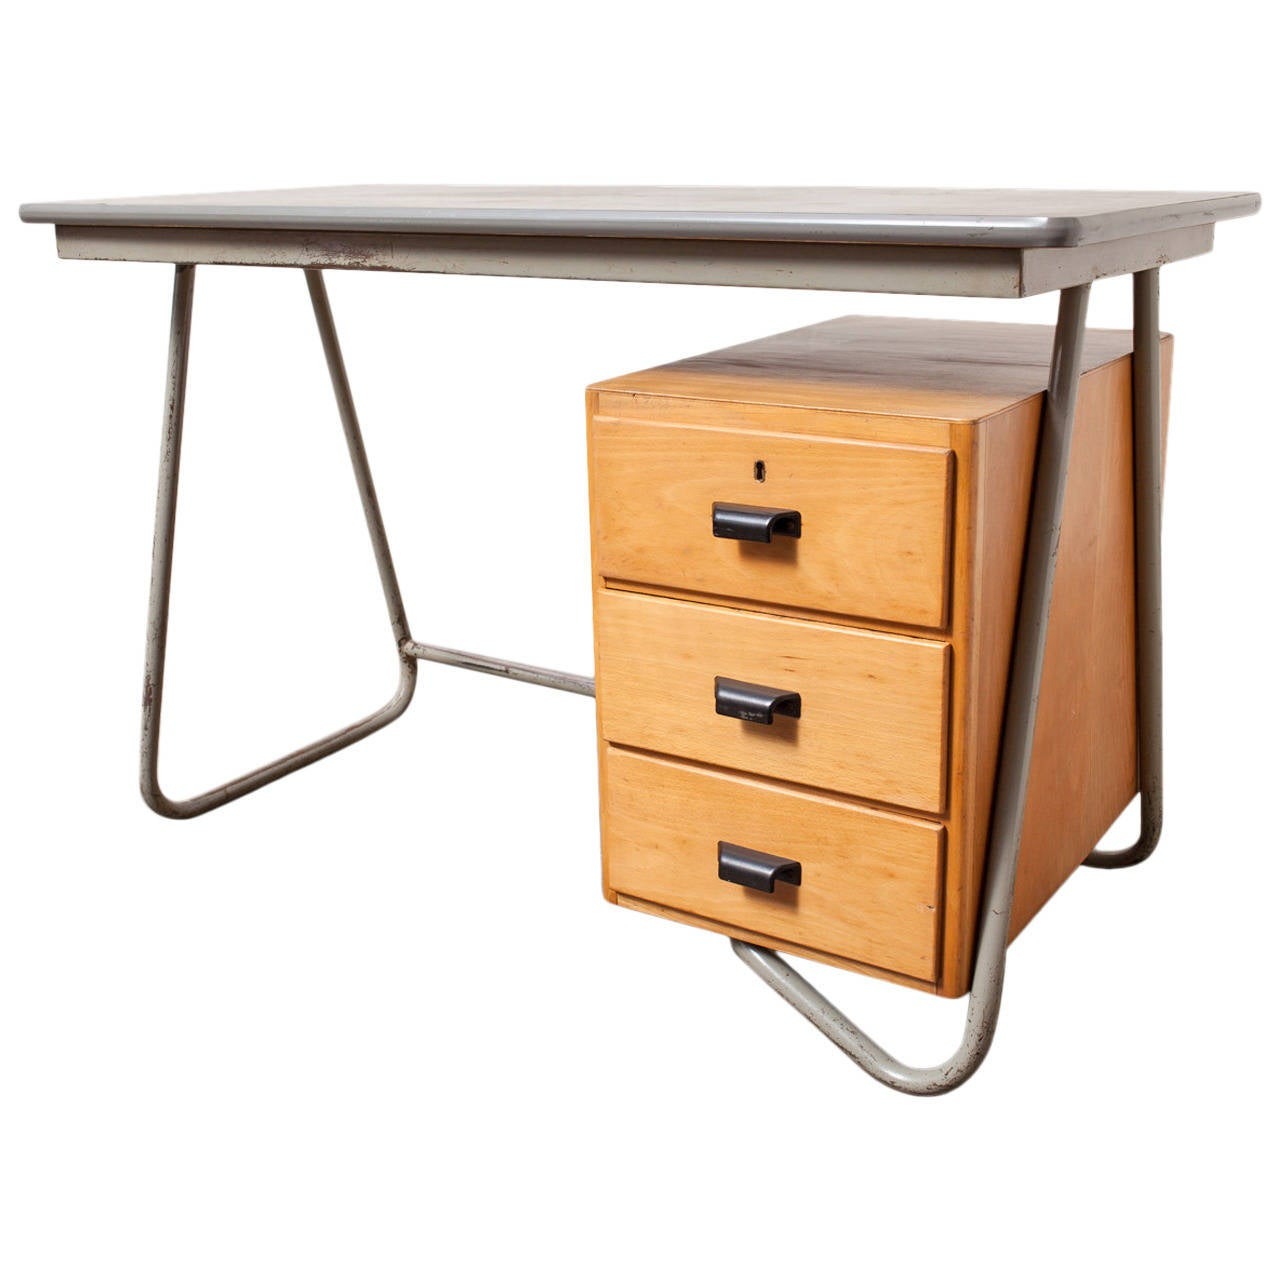 Dutch Deco Style Tubular Desk with Birch Drawers For Sale